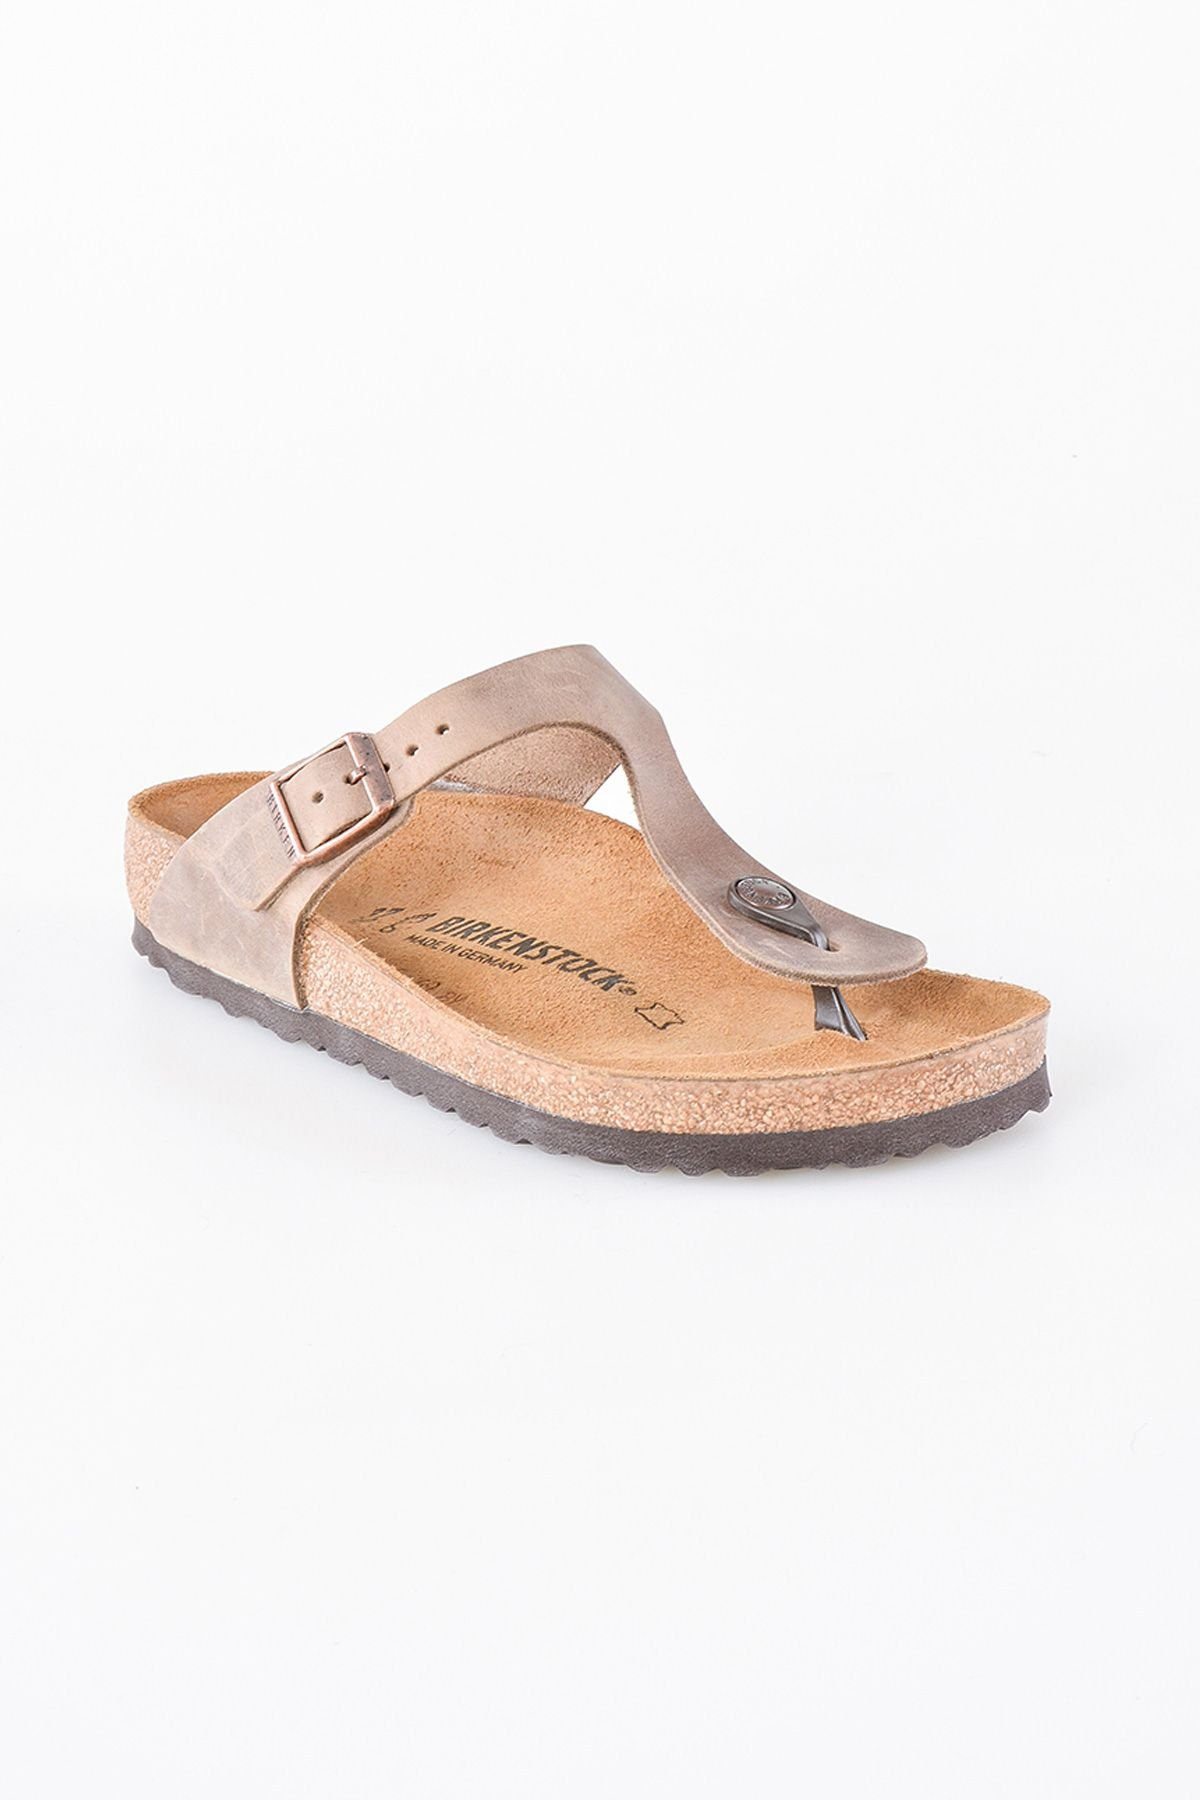 Birkenstock Gizeh BS Genuine Leather Women's Summer Slippers 0943811 Ginger